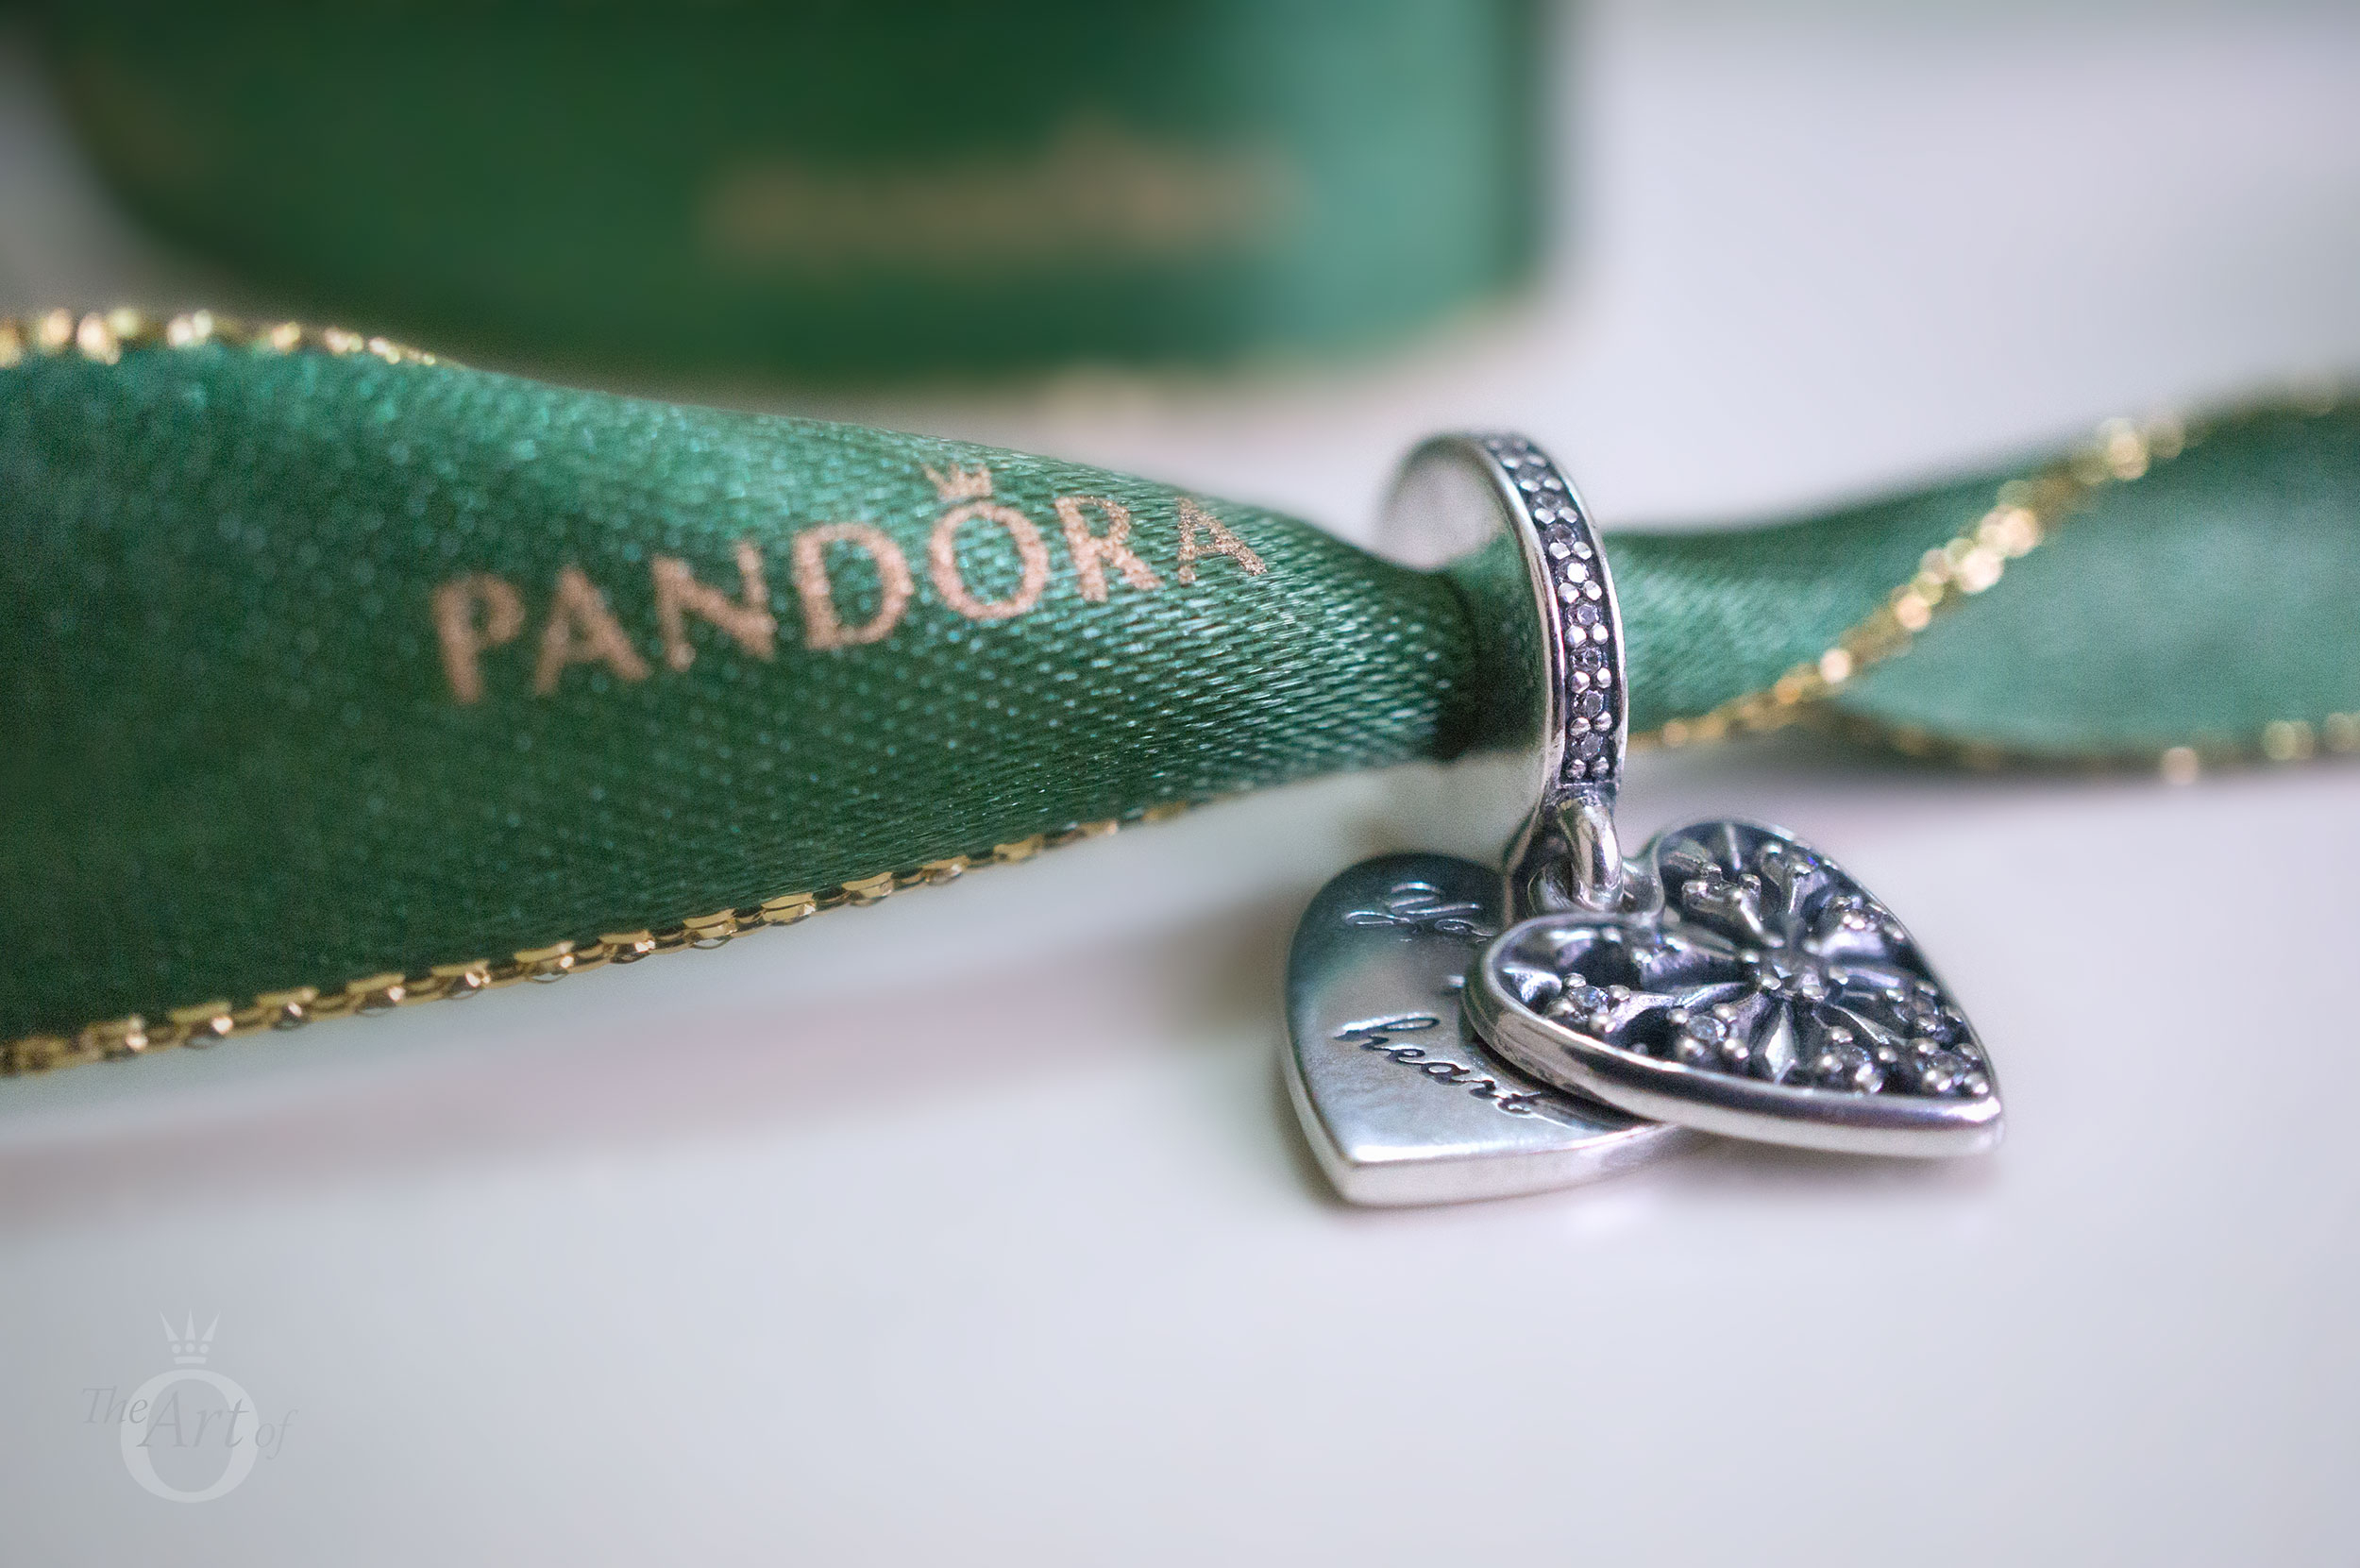 Review: Pandora Heart Of Winter Pendant Charm – The Art Of Pandora With Recent Heart Of Winter Necklaces (View 17 of 25)